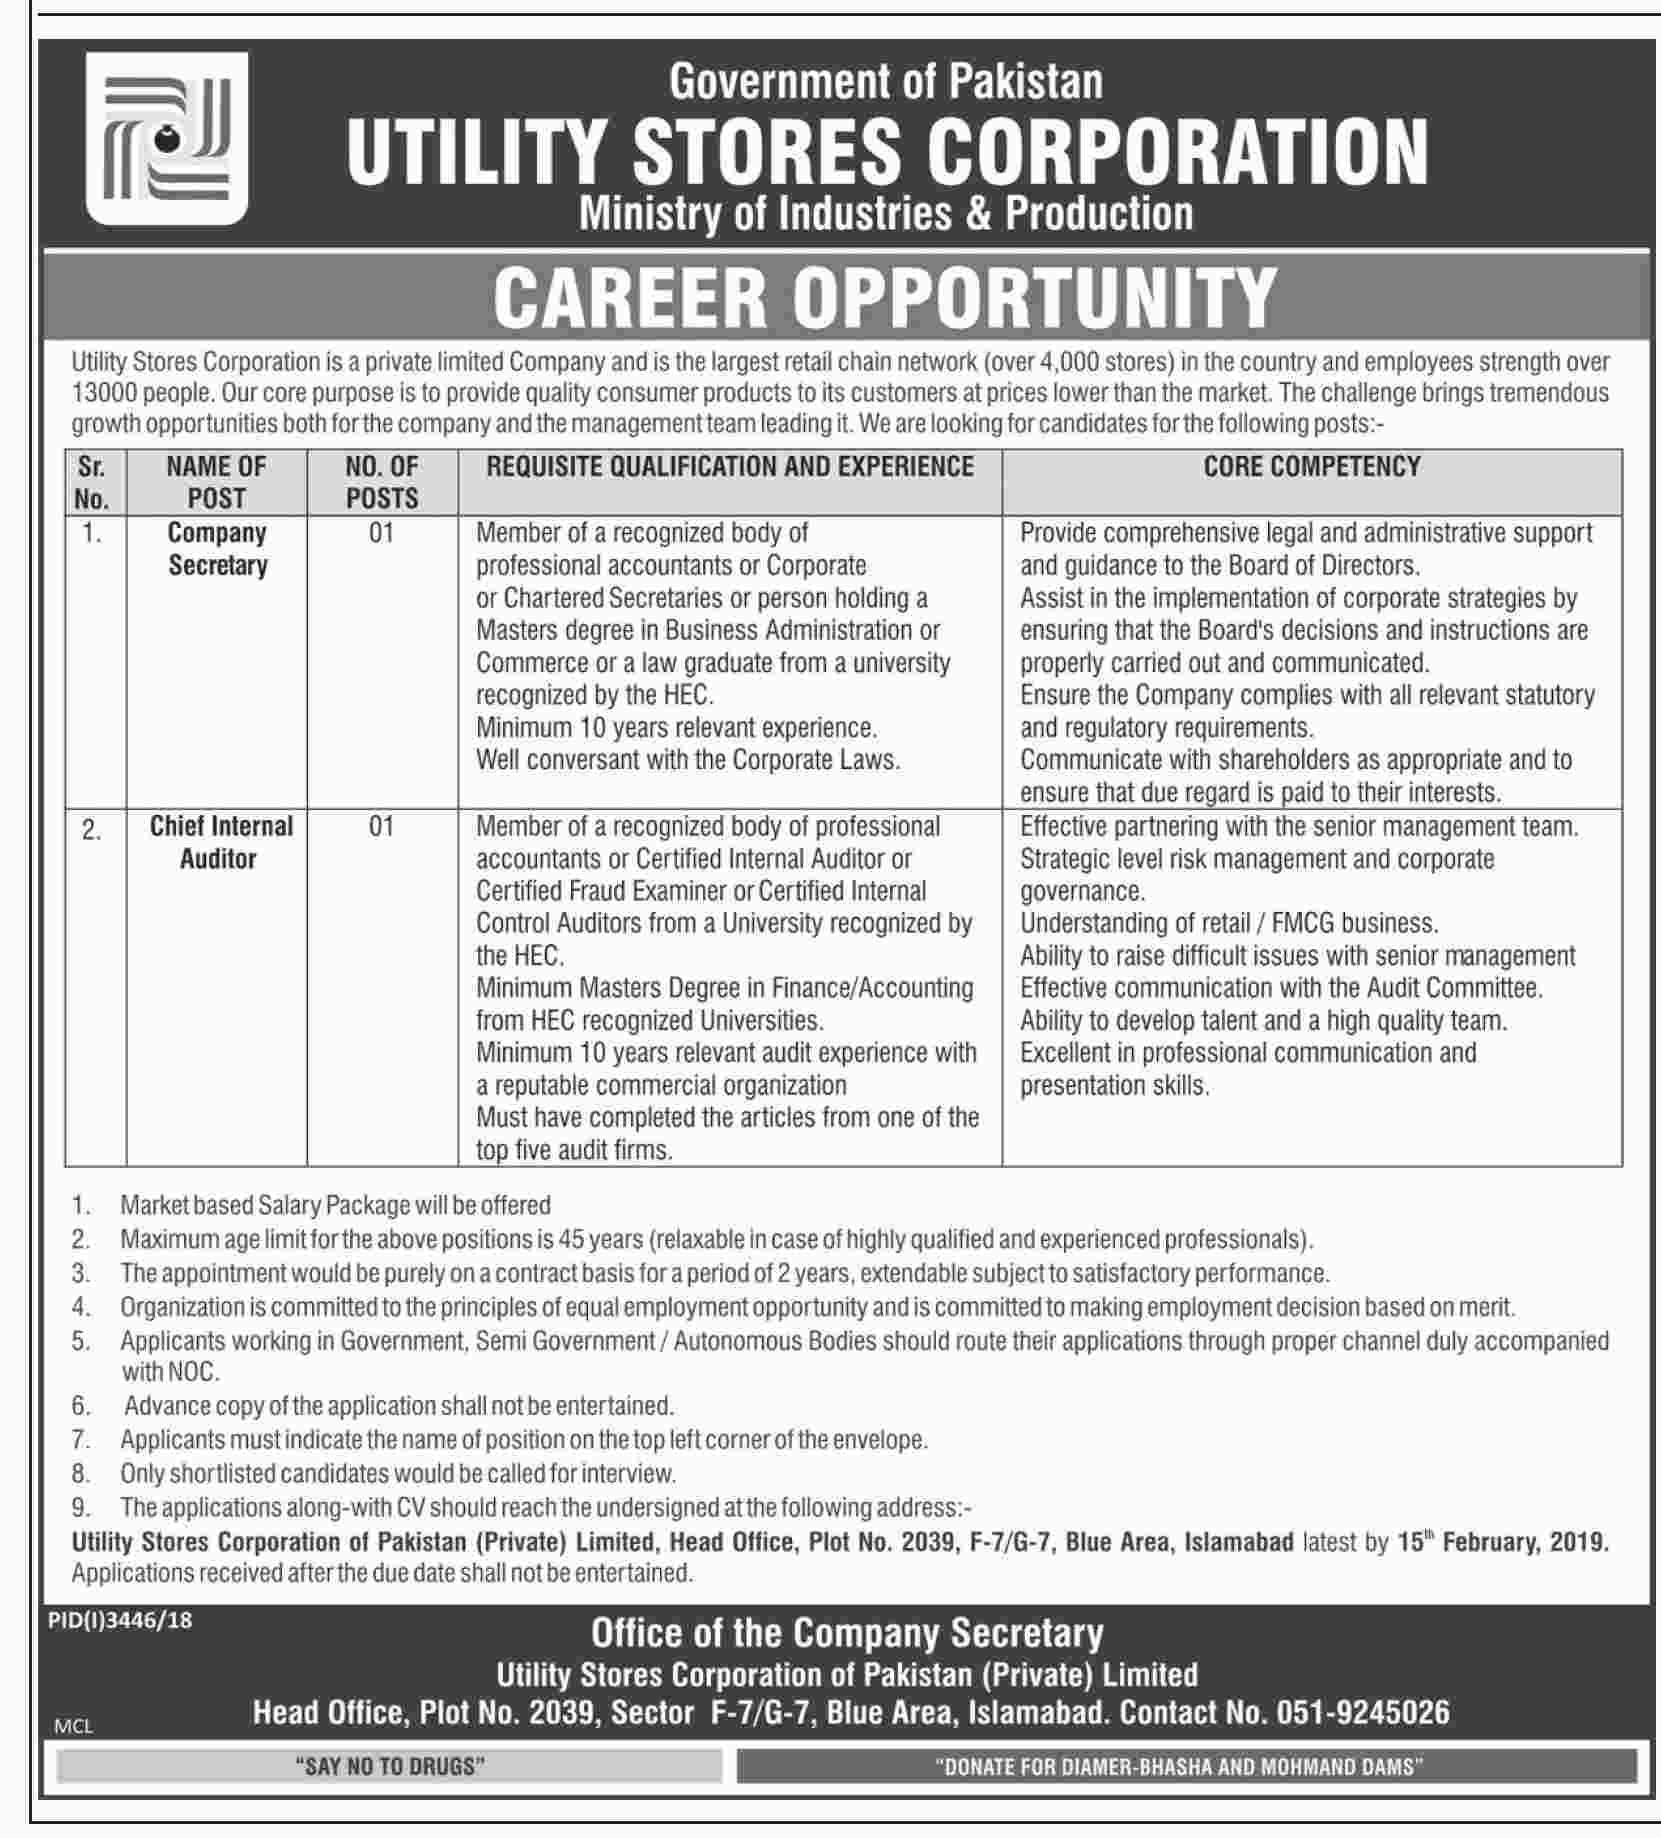 Government of Pakistan Utility Stores Corporation Jobs